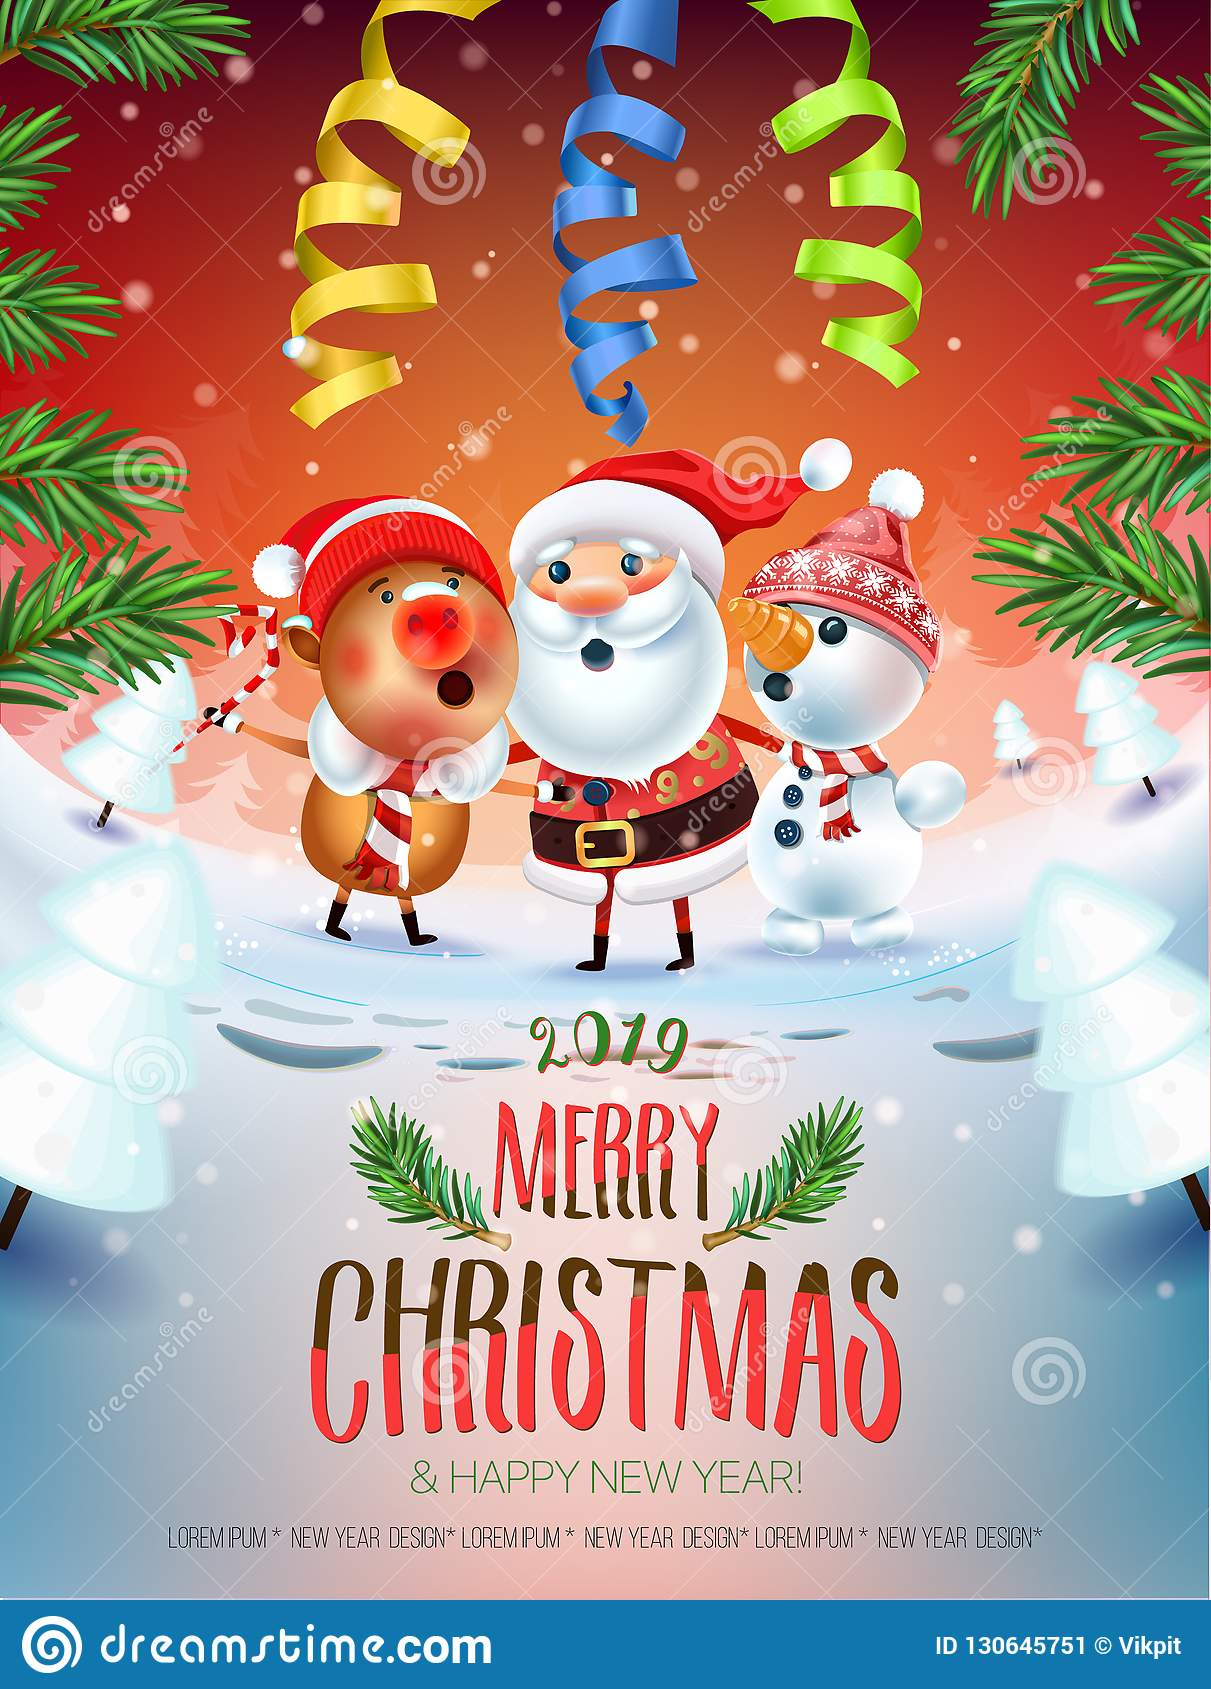 2019 merry christmas new year poster santa claus snowman and symbol of 2019 year pig stock vector illustration of cartoon letter 130645751 https www dreamstime com merry christmas new year poster santa claus snowman symbol pig sing song around tree snowy meadow invitation card image130645751